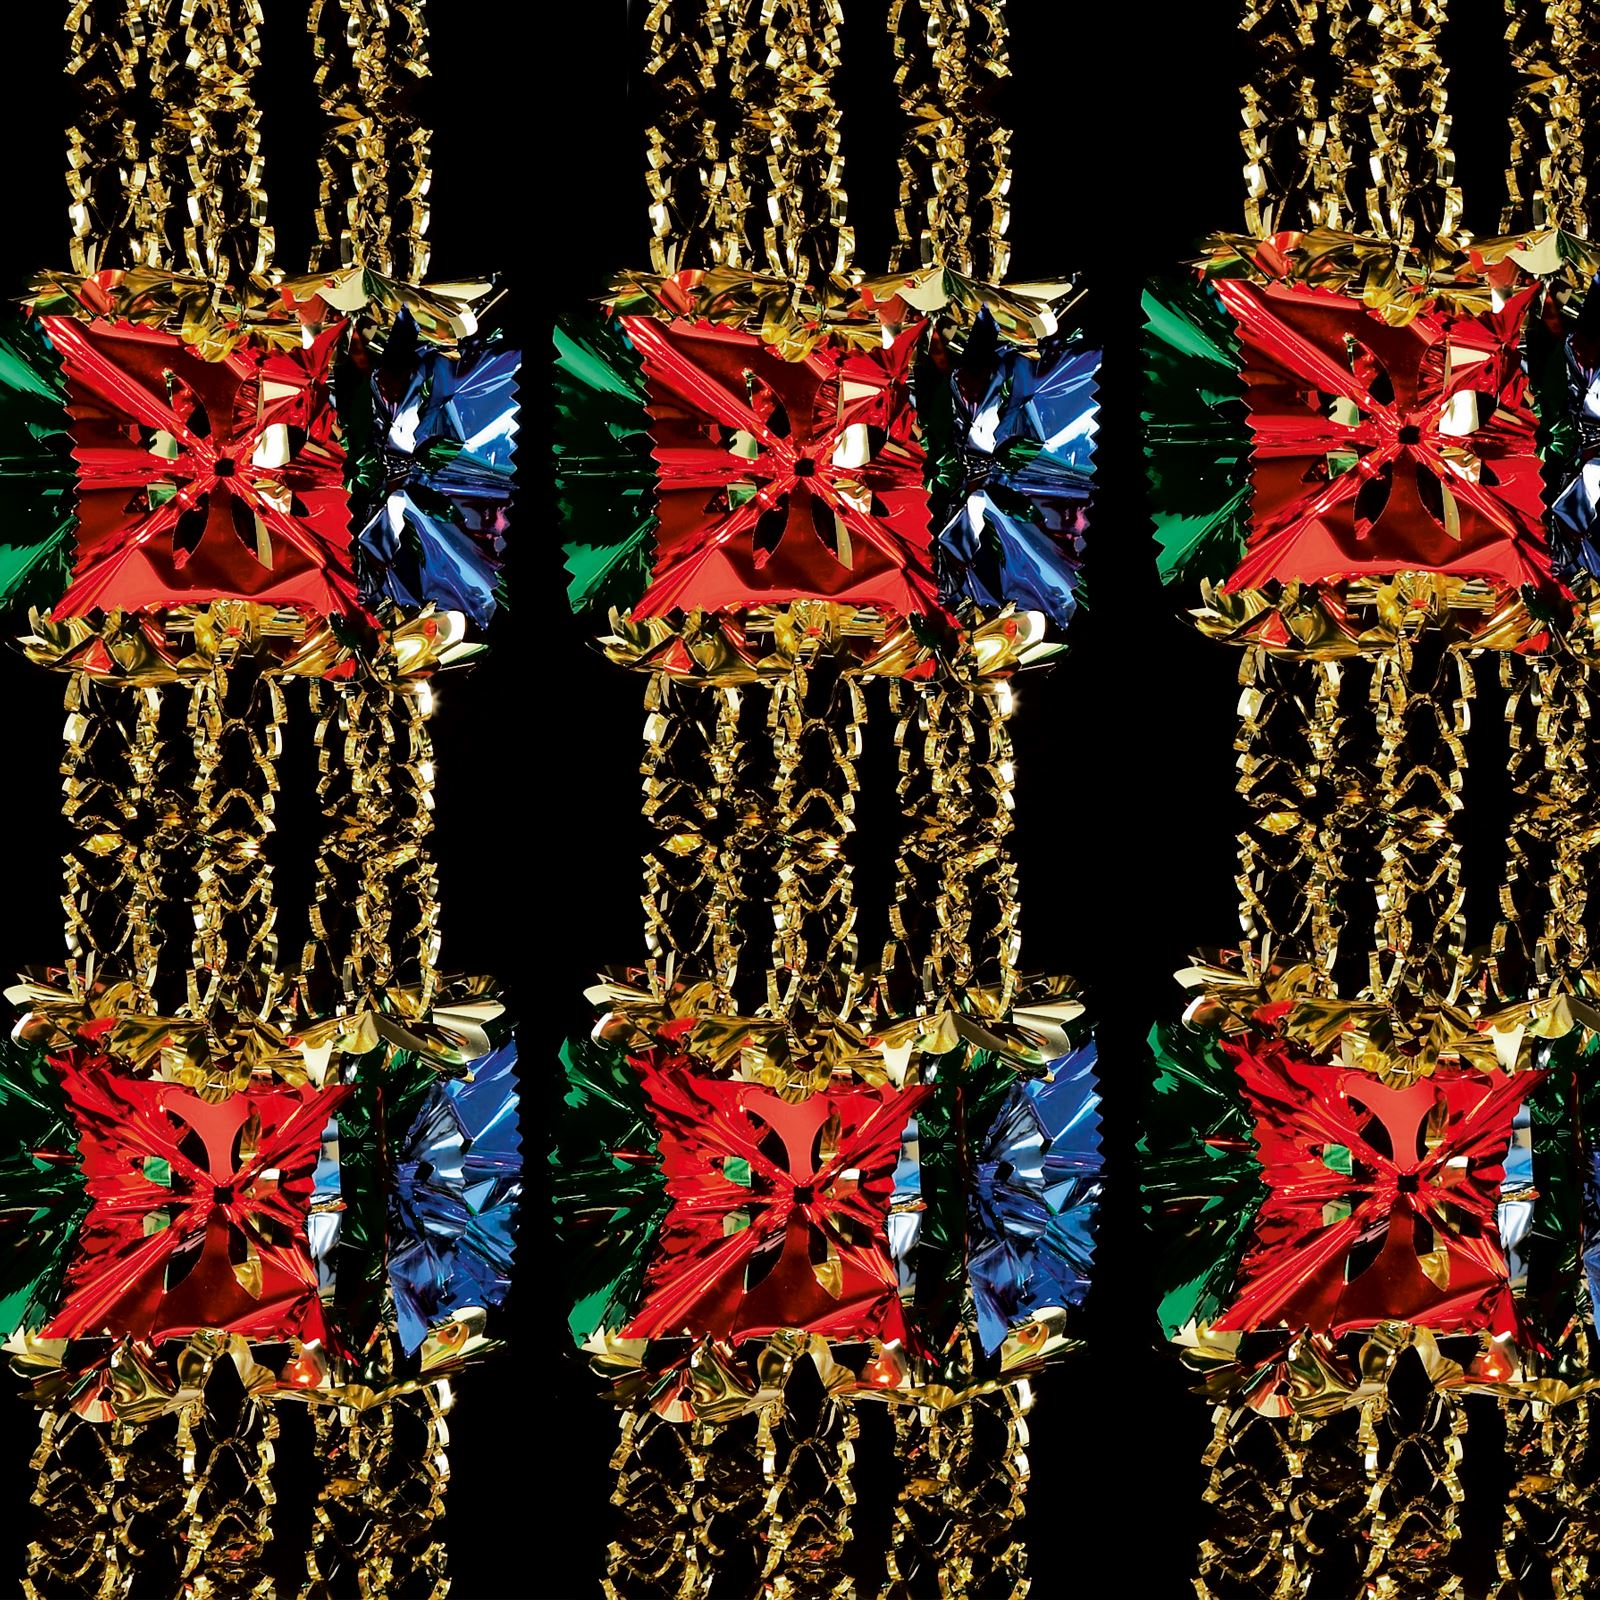 Christmas decor to hang from ceiling - 2 7m Foil Luxury Garland Large Foil Christmas